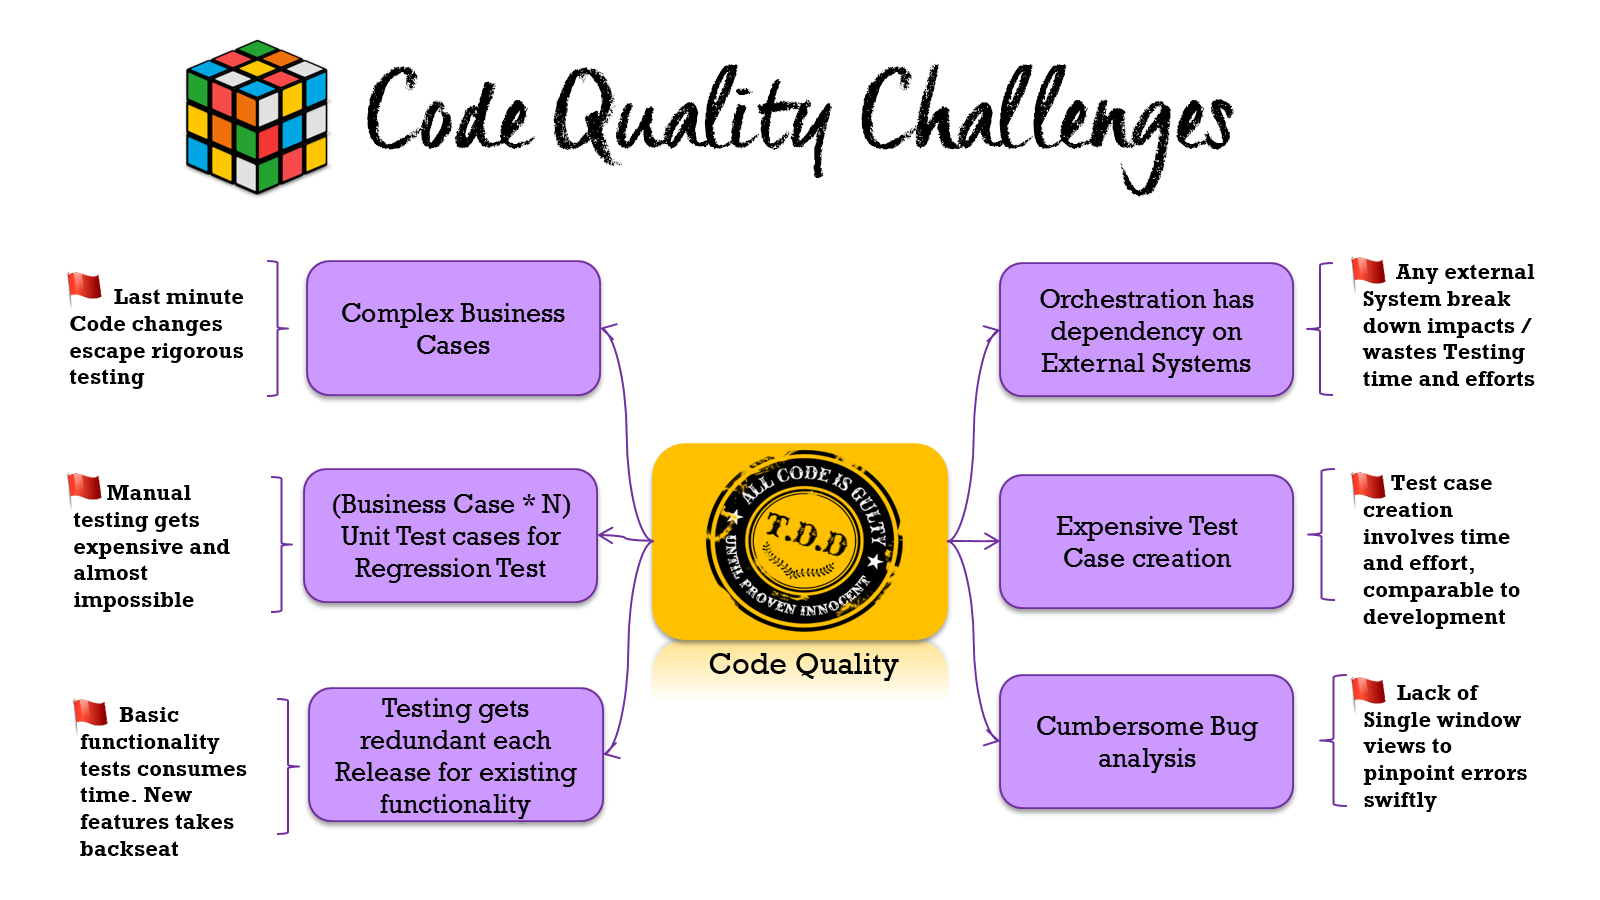 Oracle SOA Code Quality Challenges.